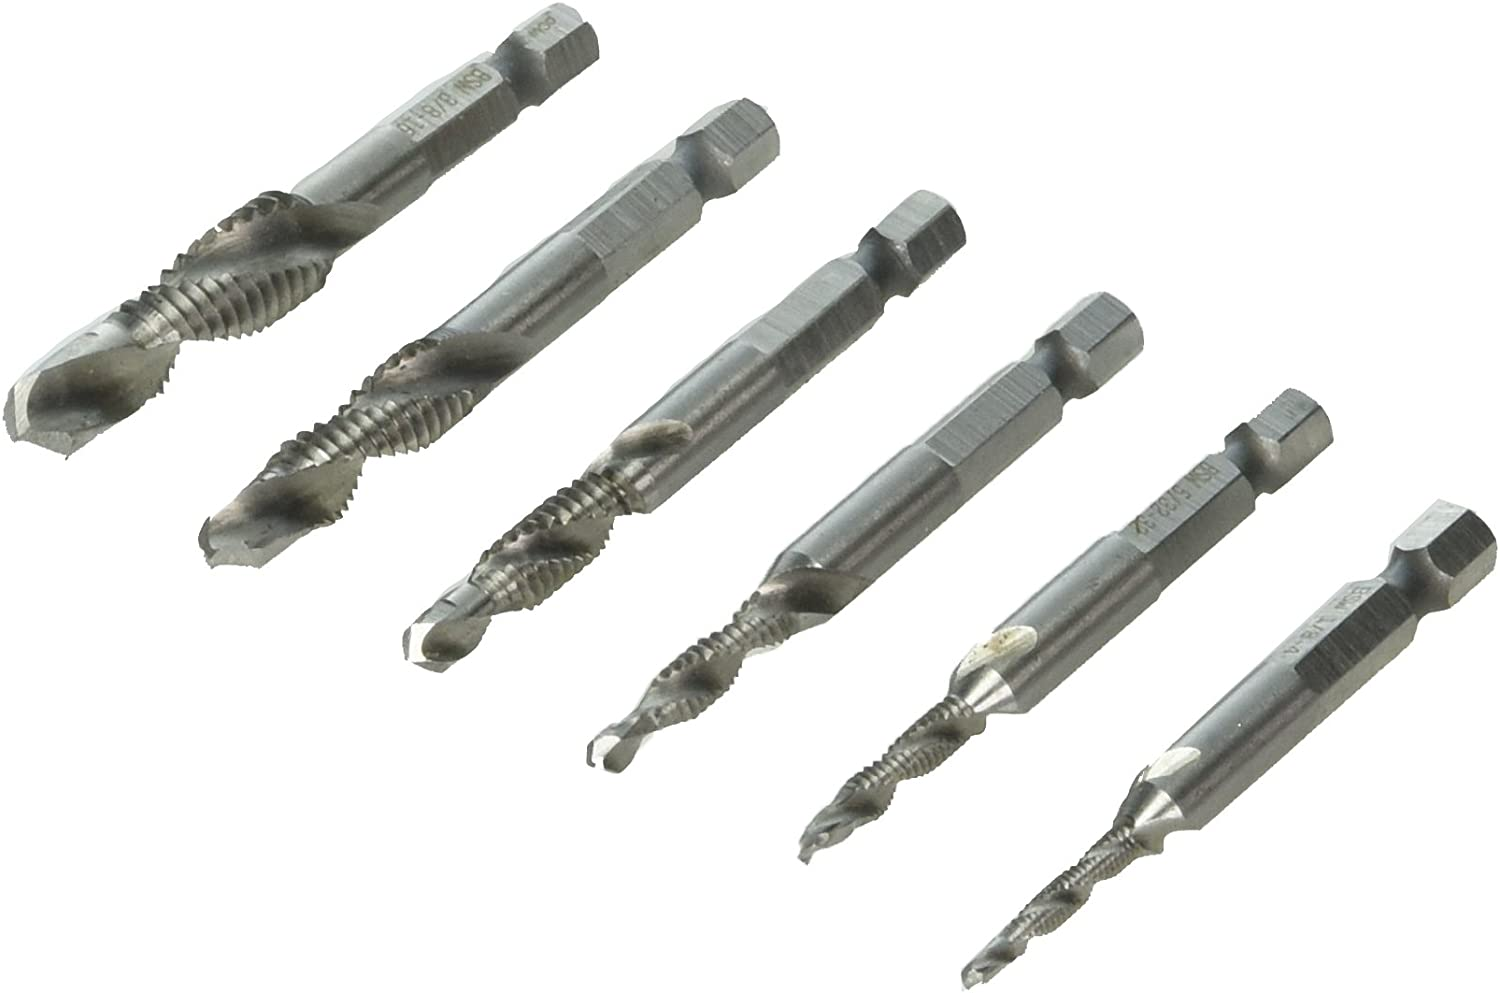 Combination drill and tap bit set RUIMI metal deburr countersink drill bit 1//8-3//8